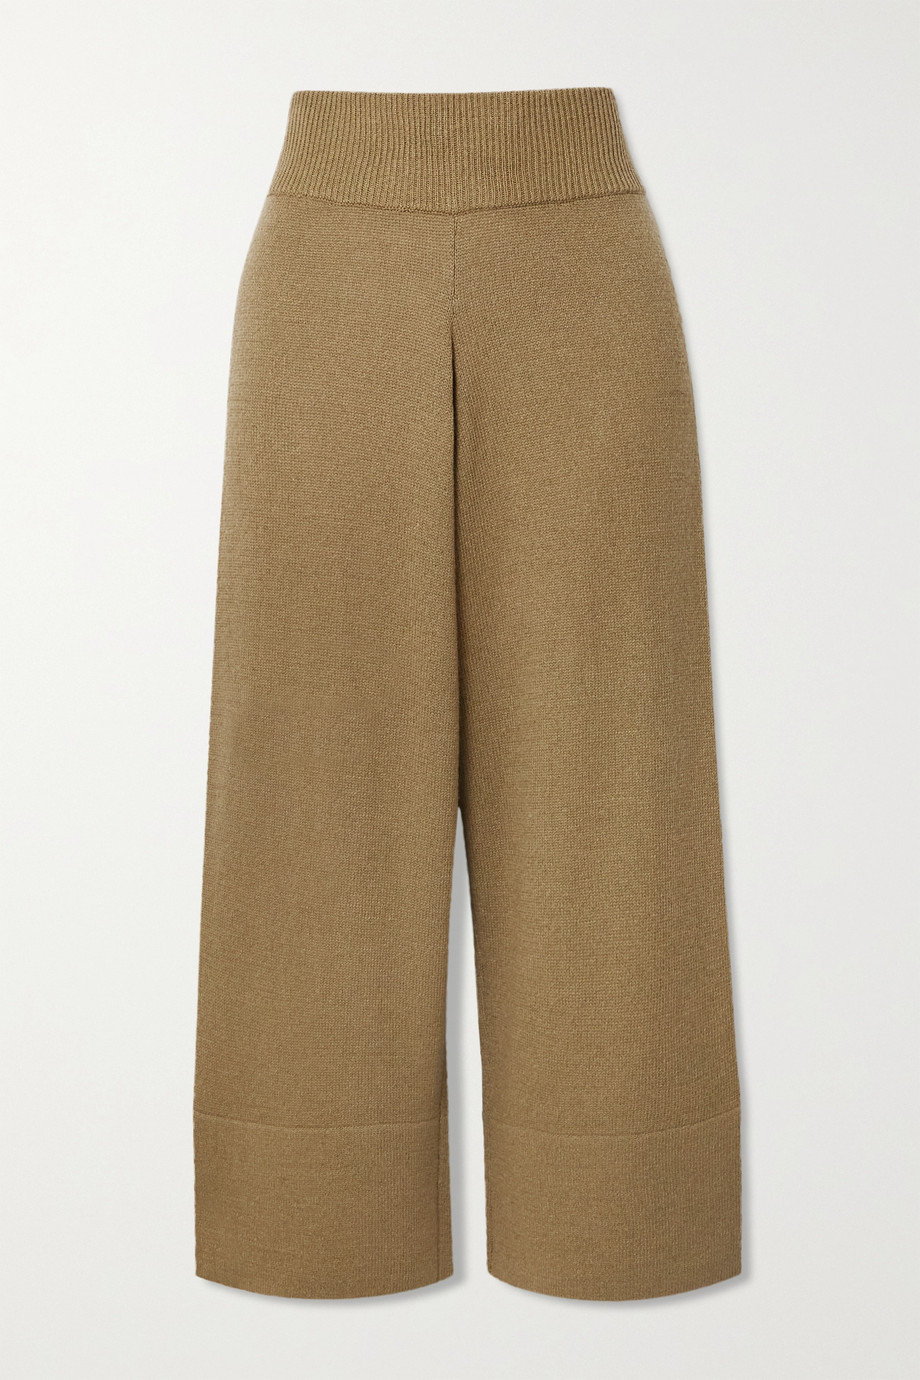 Altuzarra Cynthia cropped cashmere and cotton-blend pants